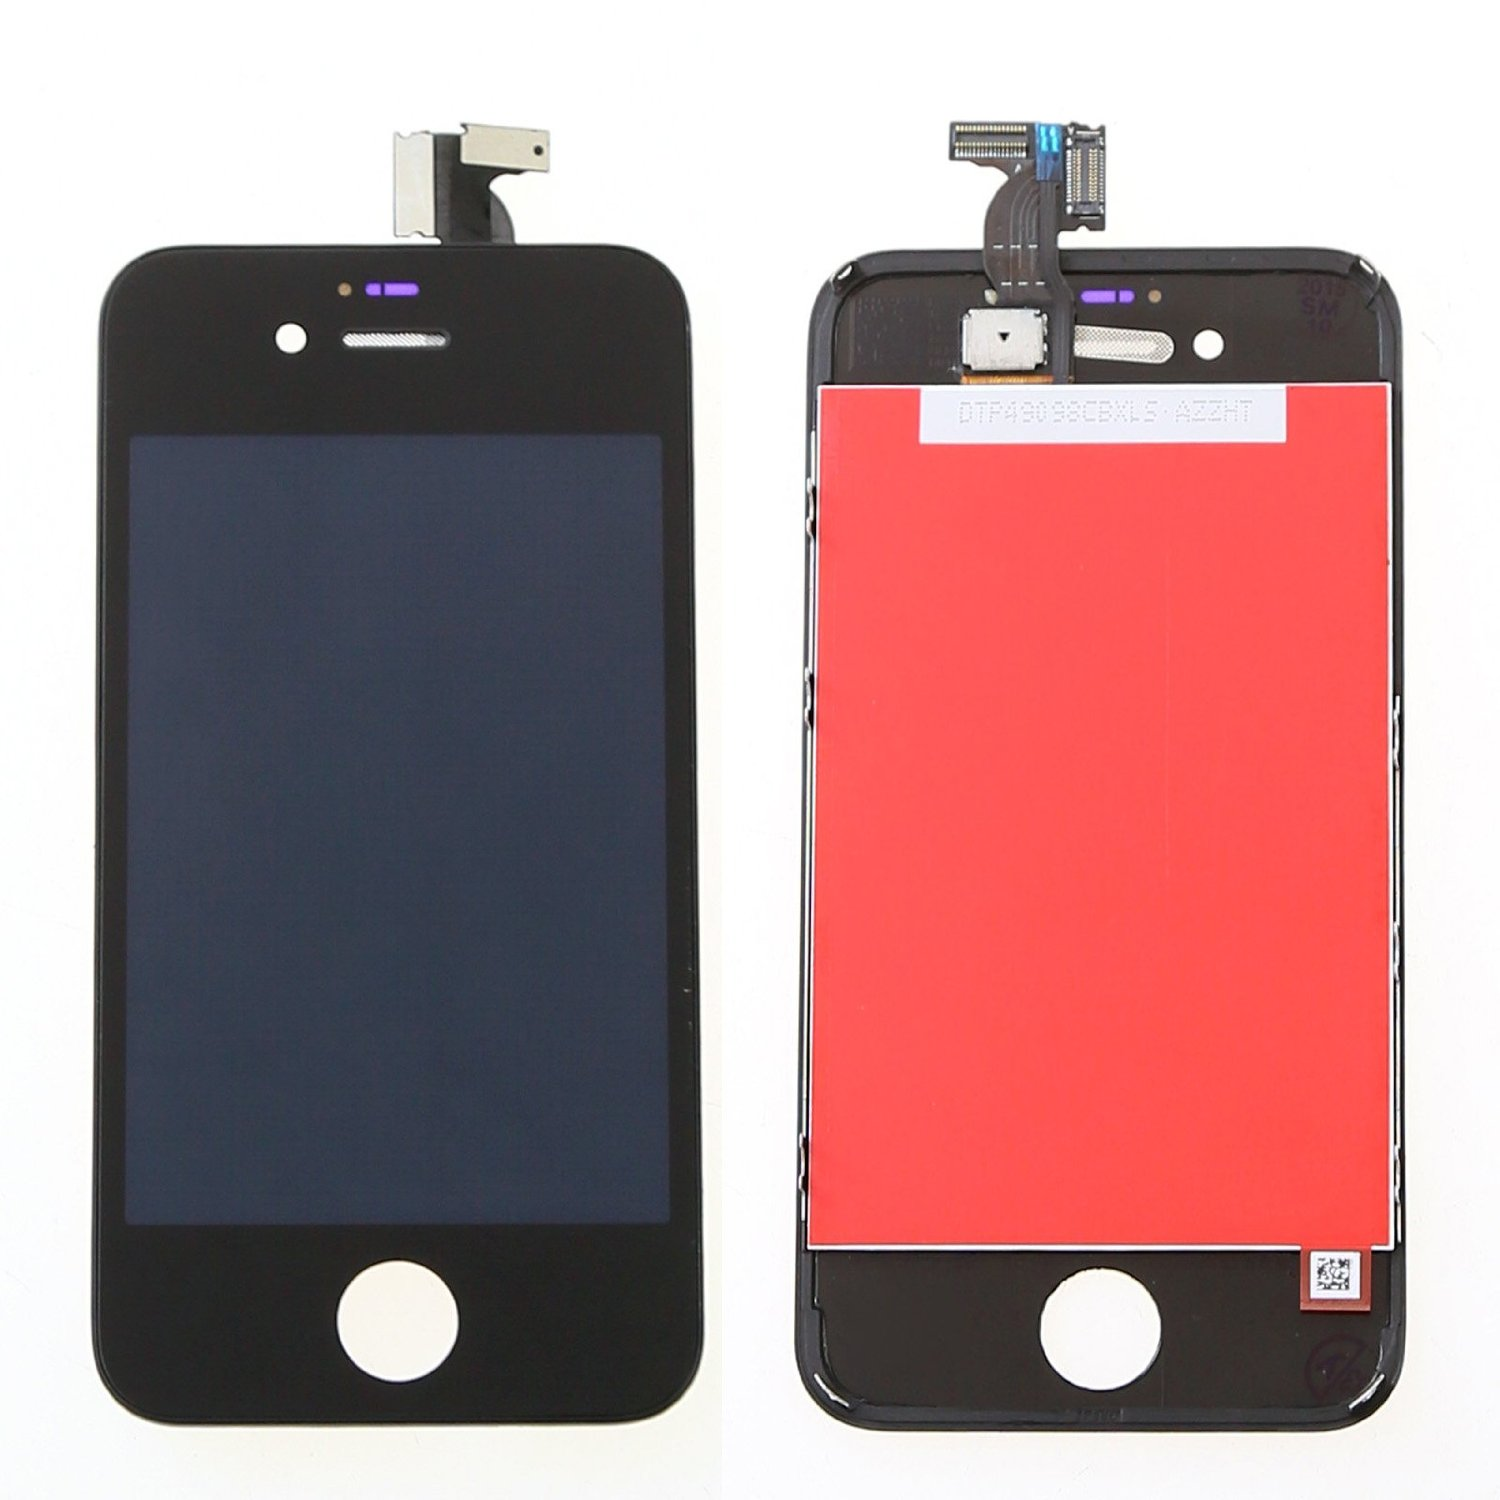 iphone 4 black screen start here for iphone 4s screen replacement info amp tips 14370